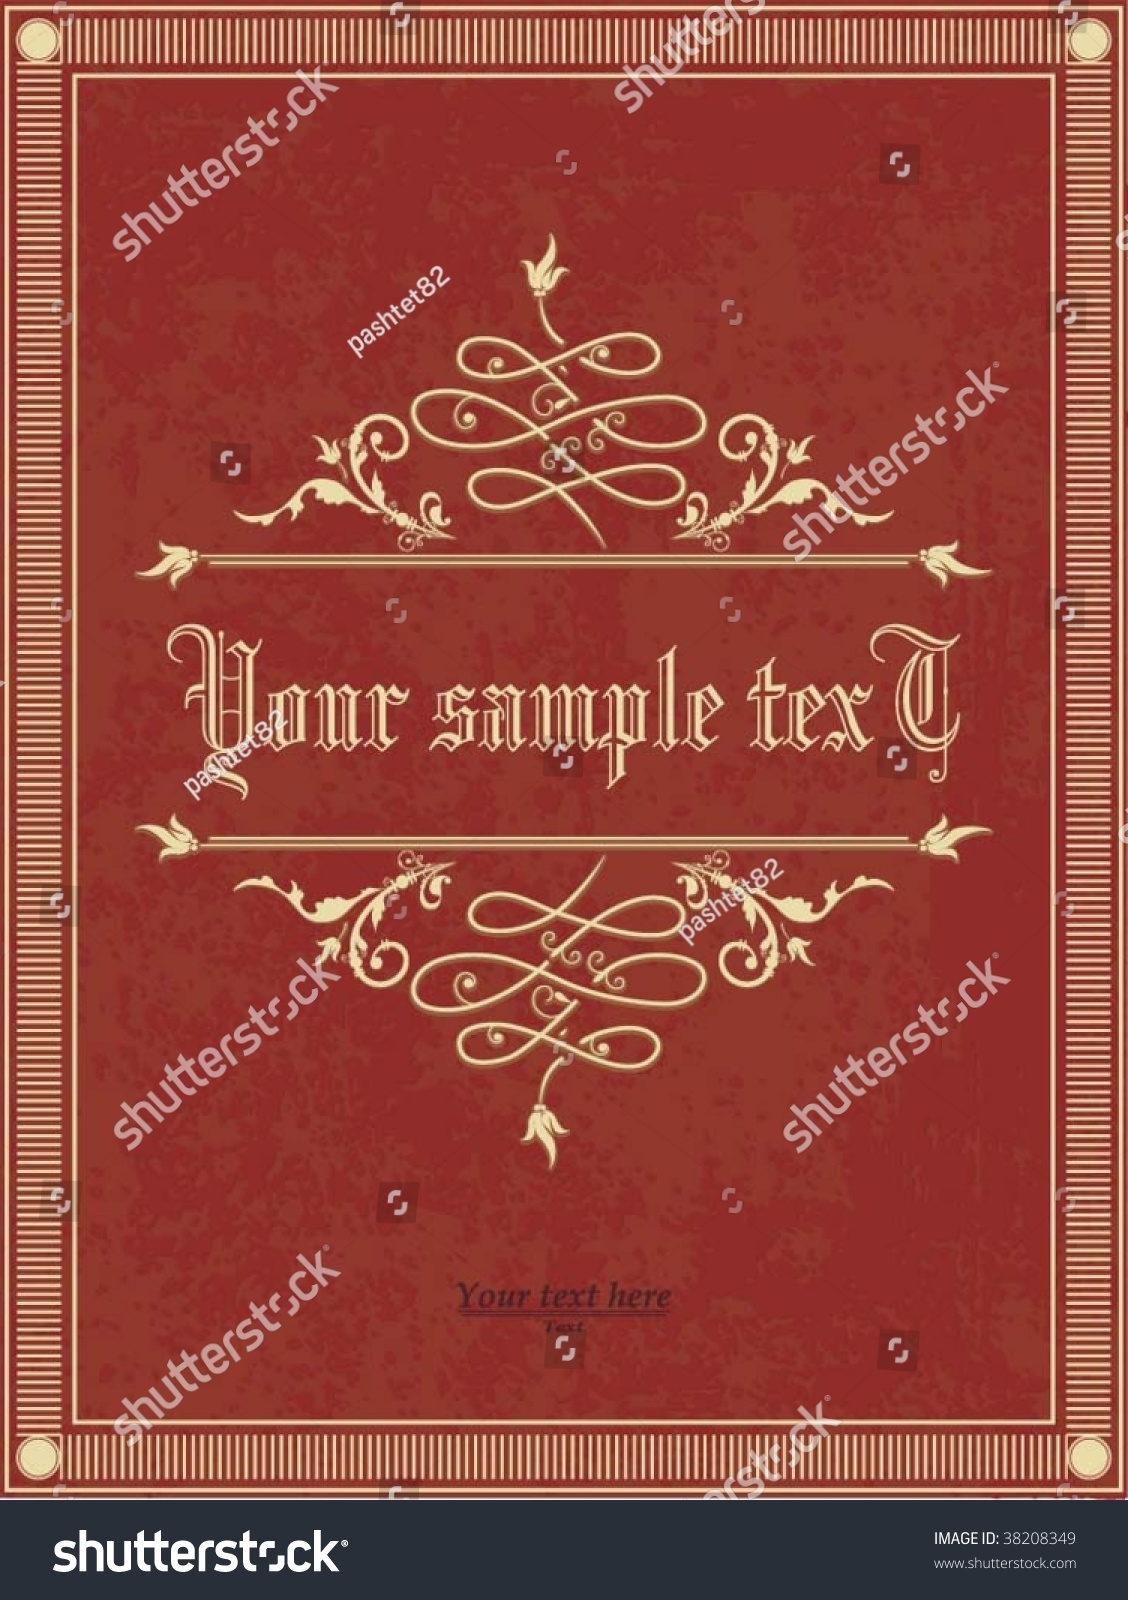 Poetry Book Cover Vector ~ Vertical vintage background book cover stock vector